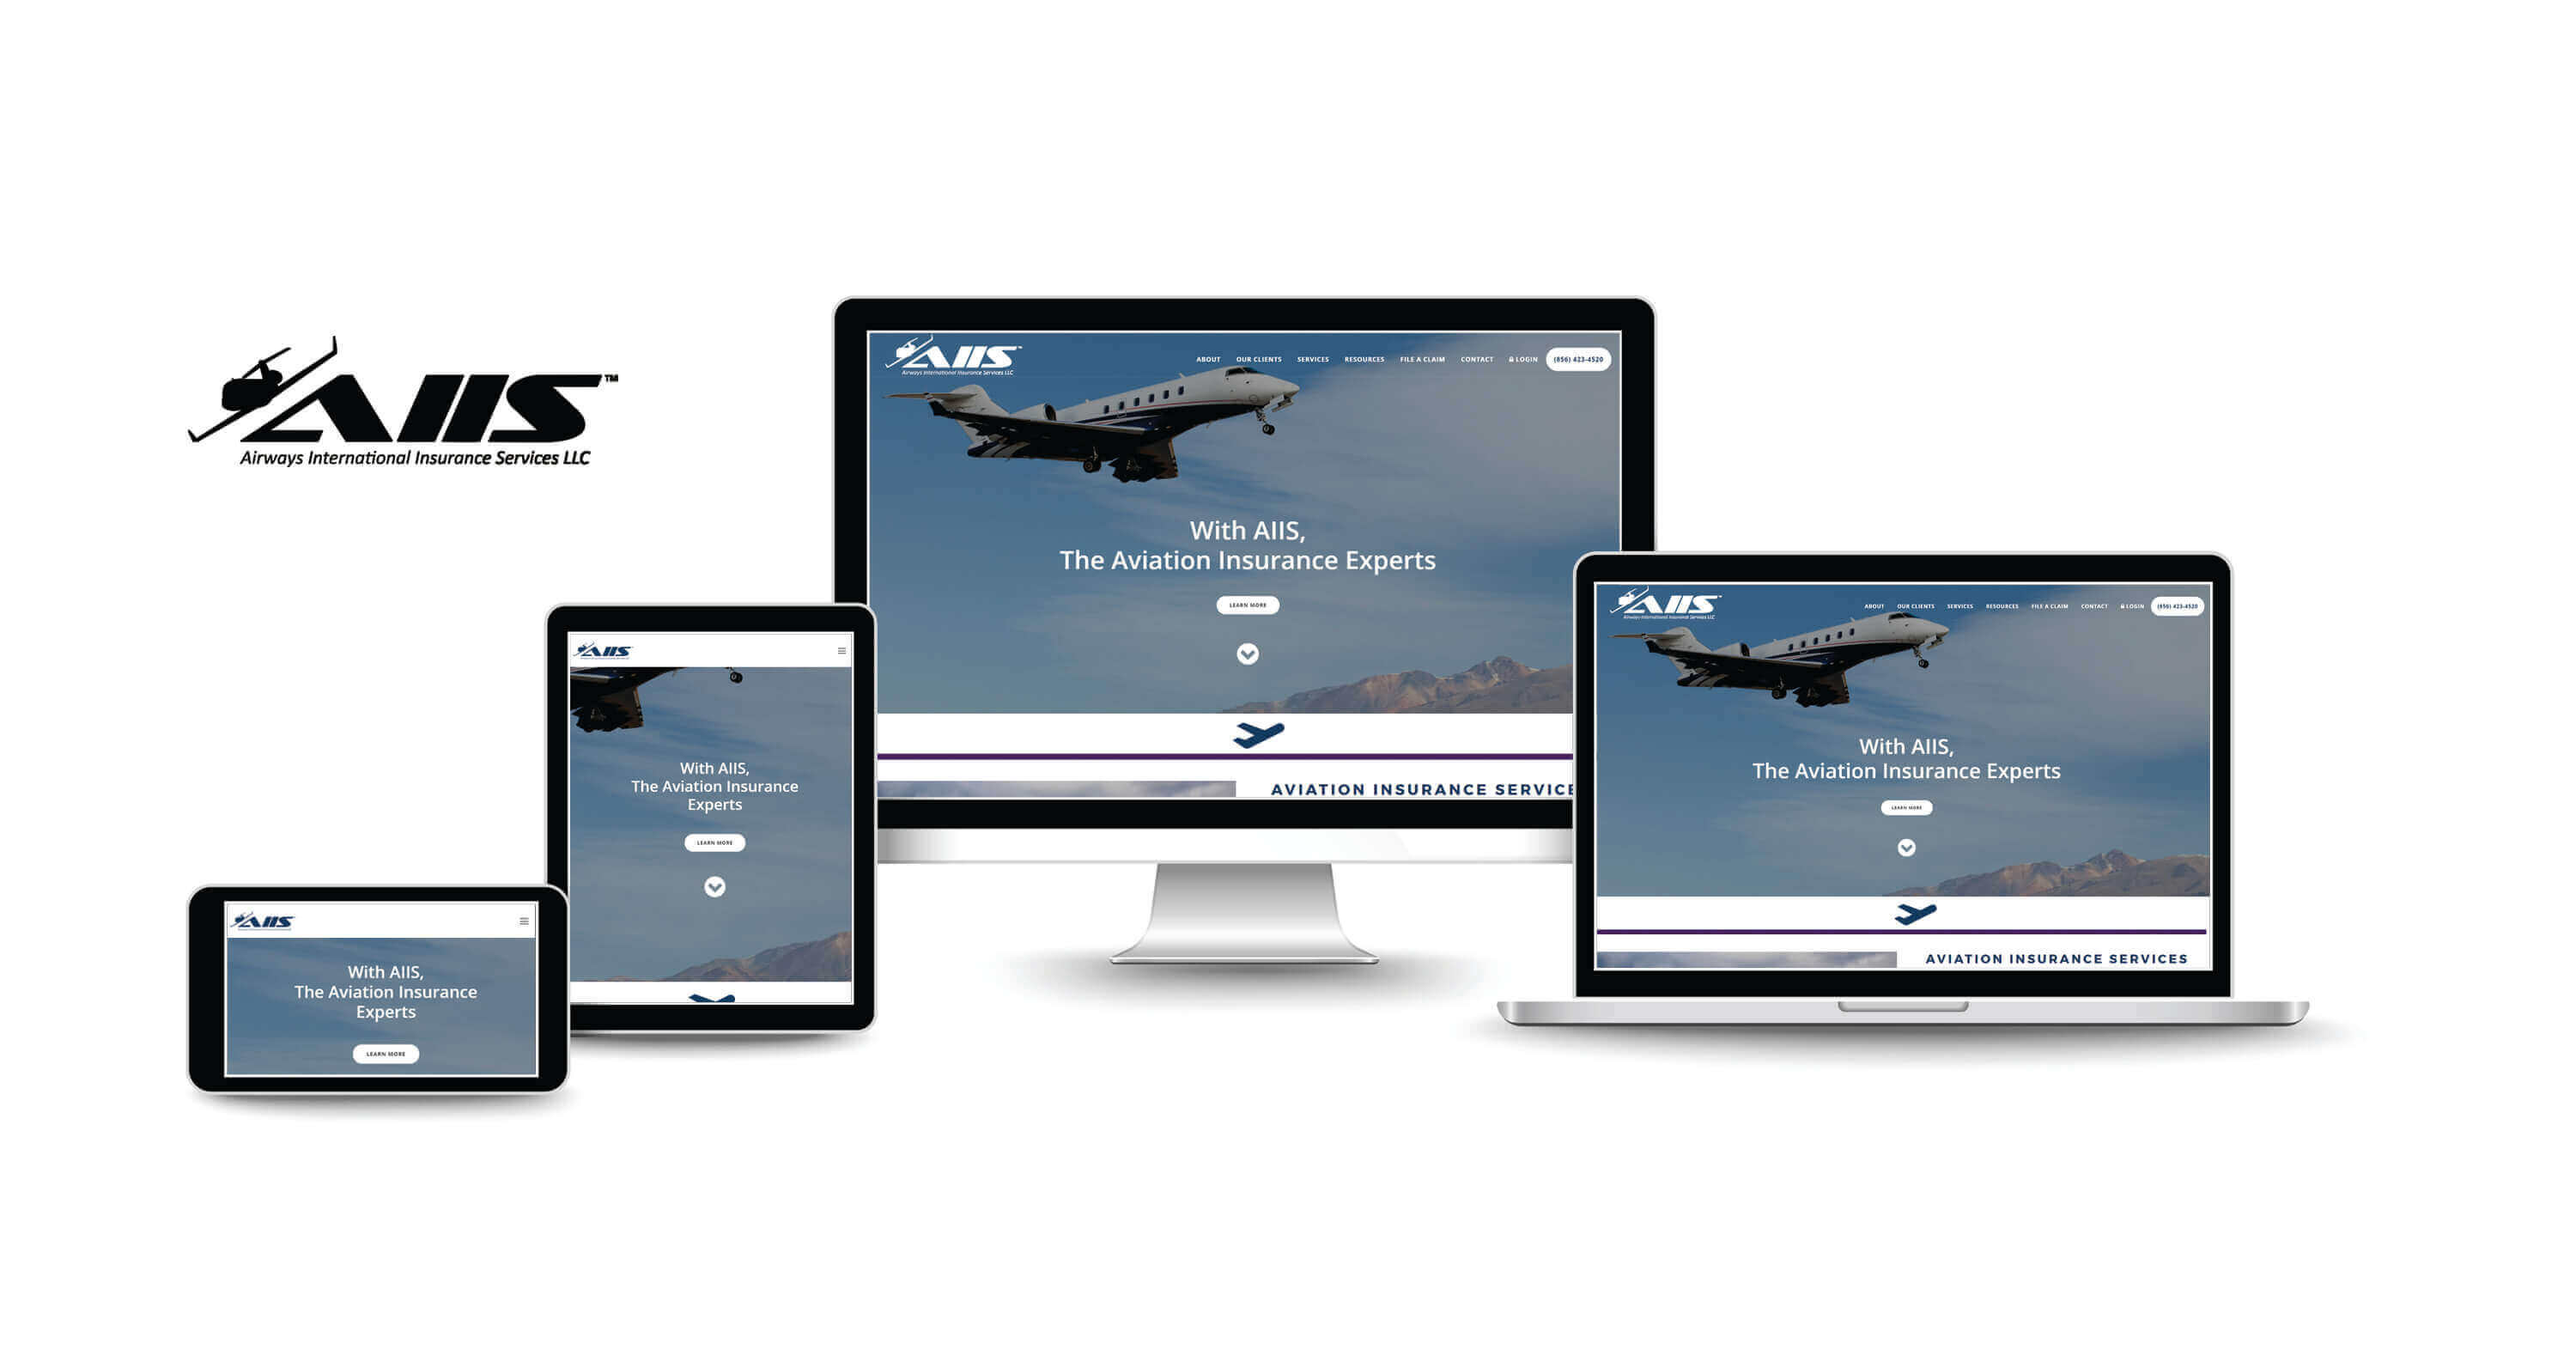 website design and SEO services for aviation insurance company